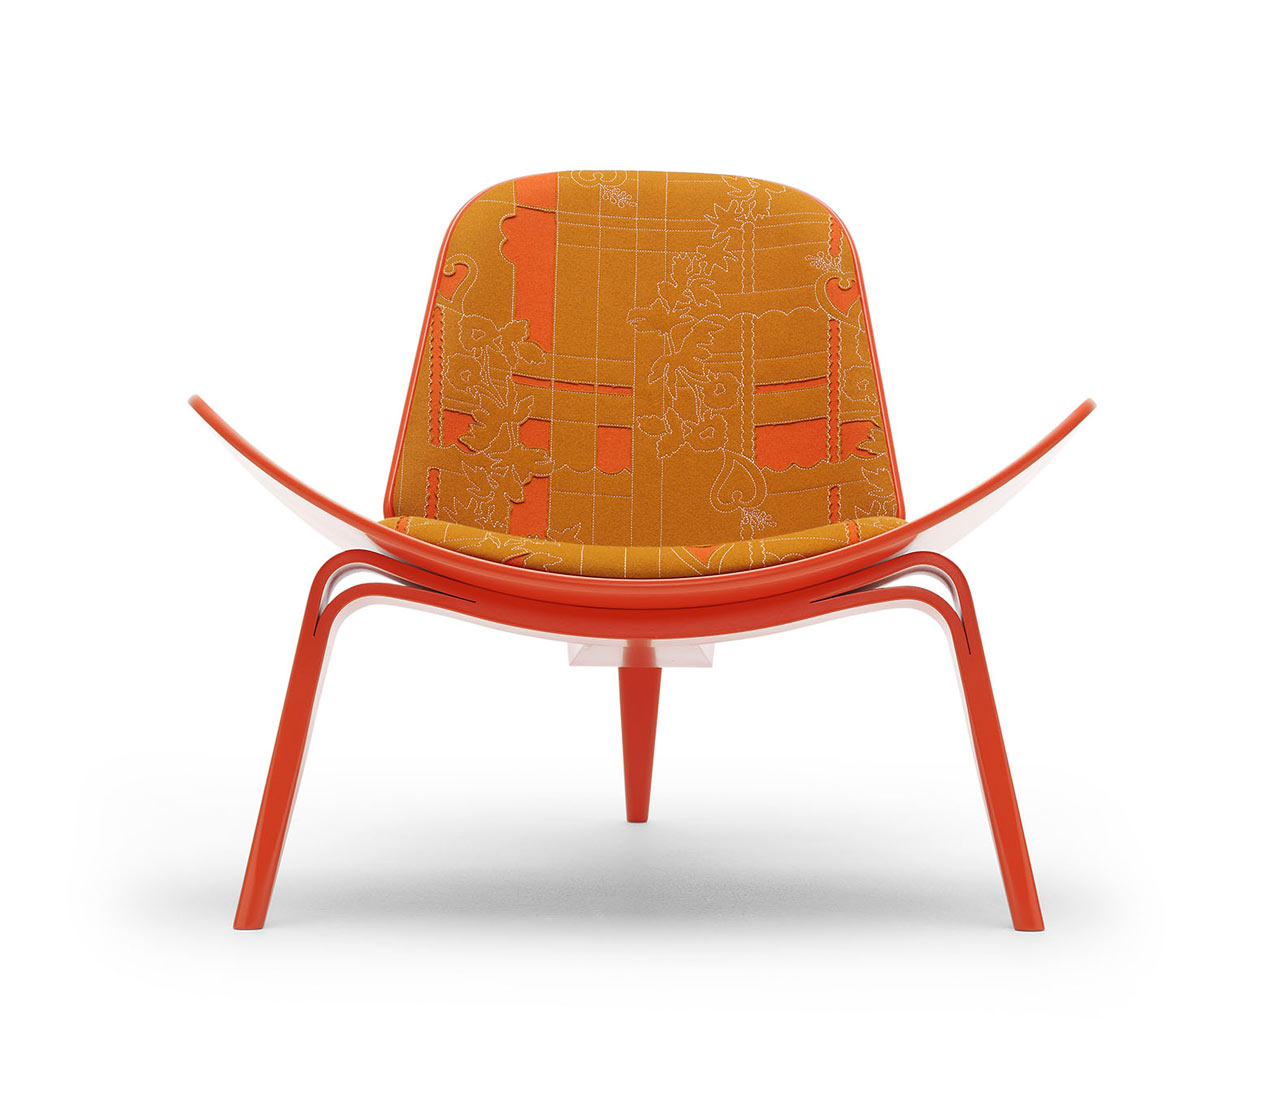 The Maharam Shell Chair Project